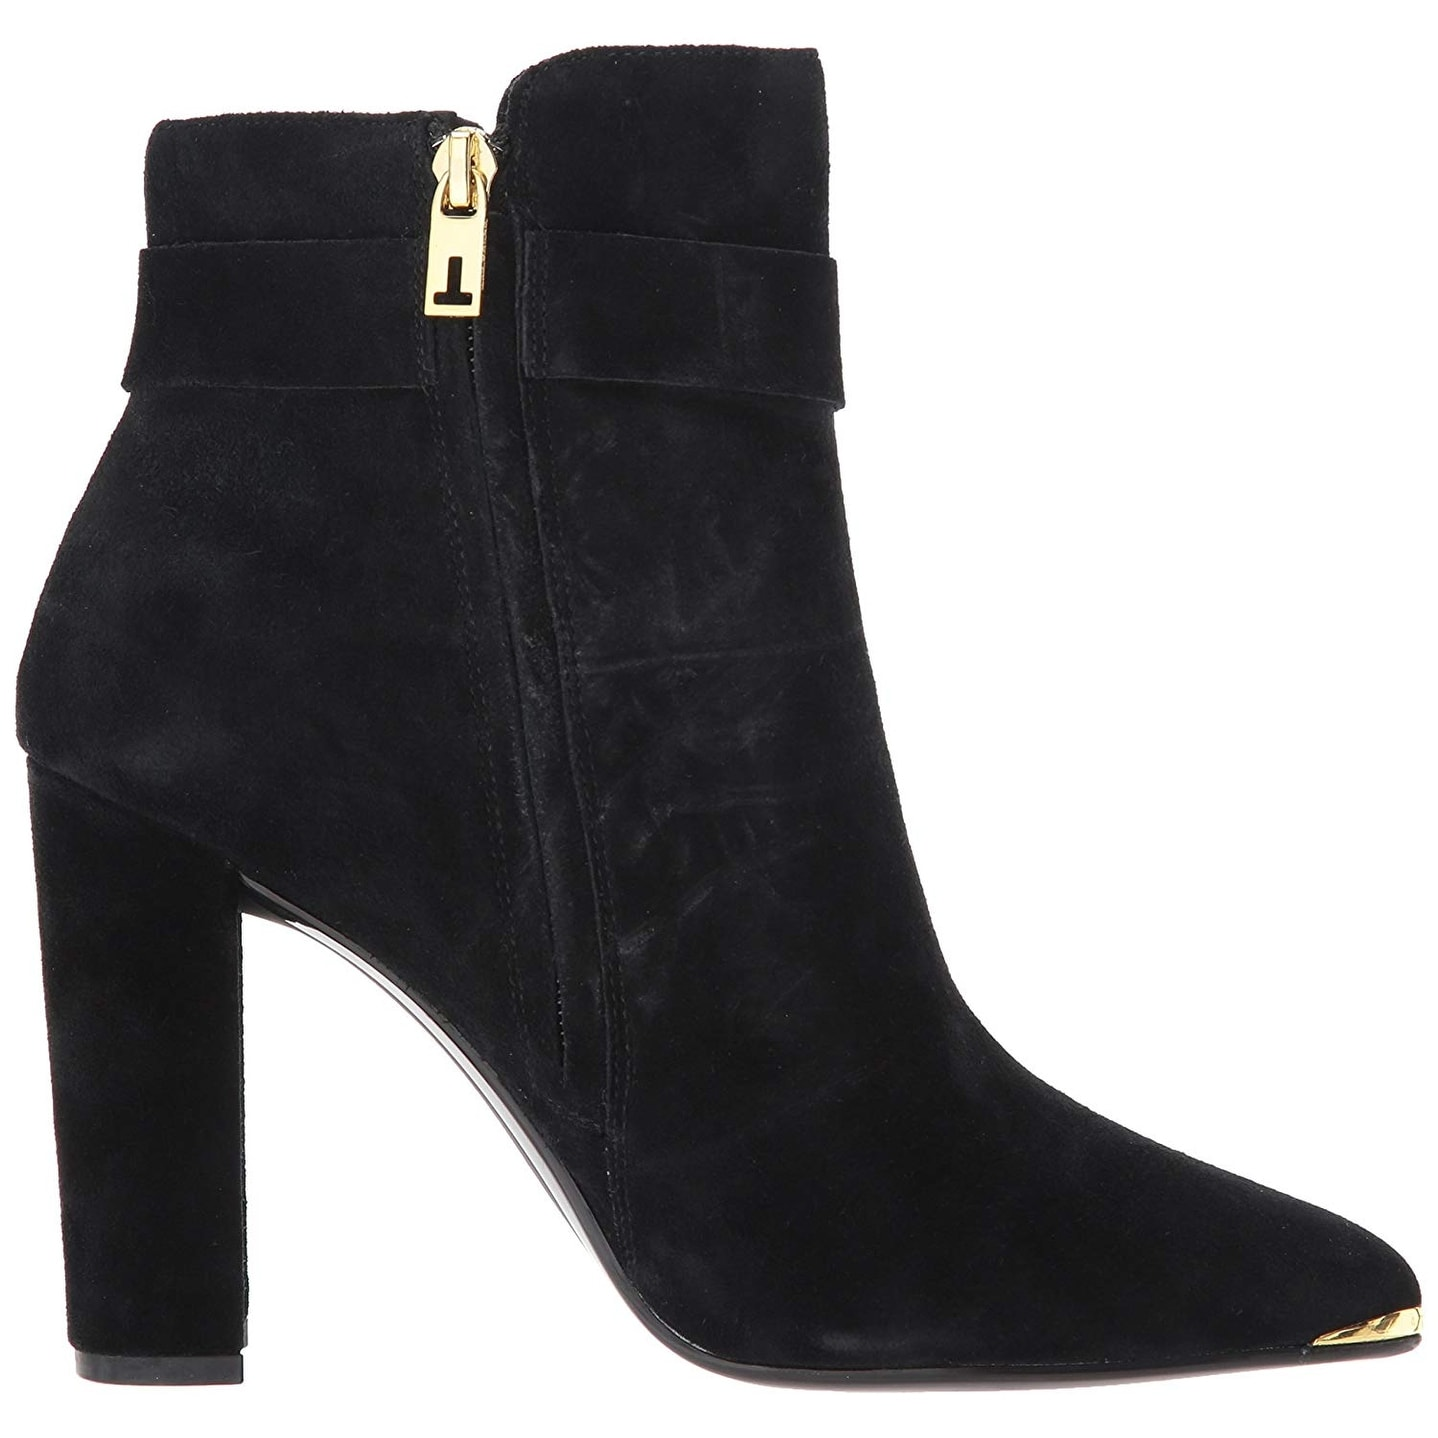 be487b45b1a6 Shop Ted Baker Womens Sailly Suede Pointed Toe Ankle Fashion Boots - Free  Shipping Today - Overstock - 22811145